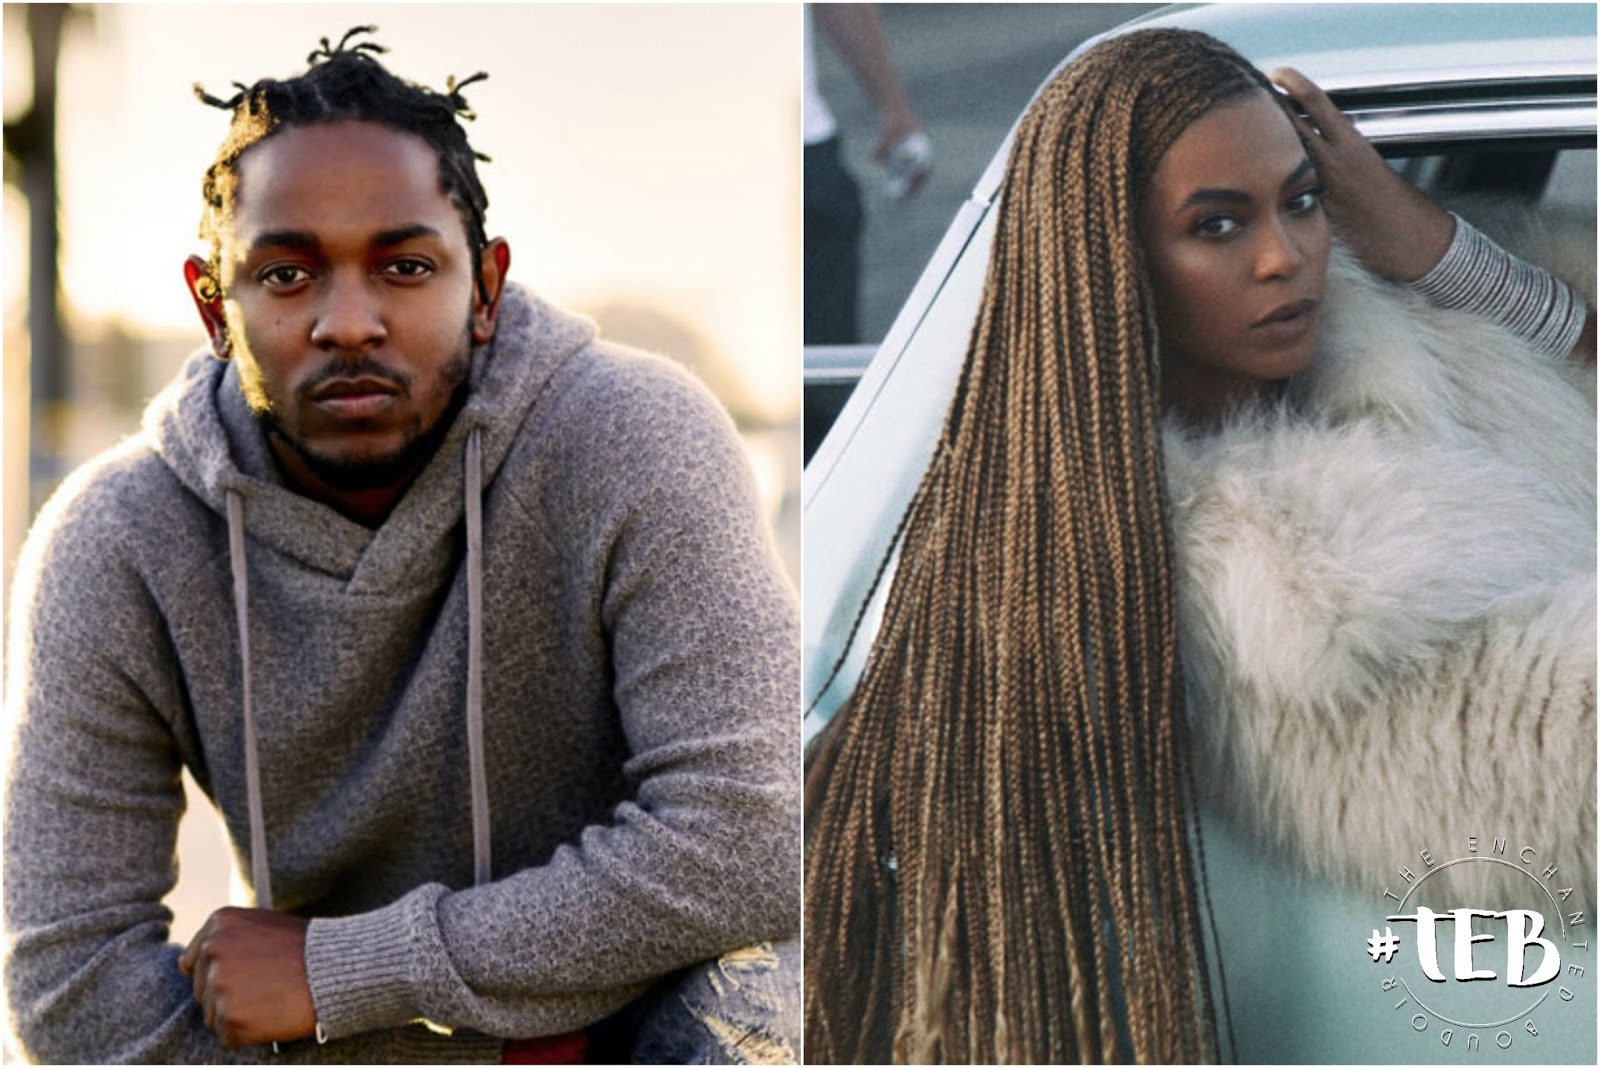 BEYONCE, KENDRICK LAMAR & MORE: Is this the beginning of a re-education about black history in music?